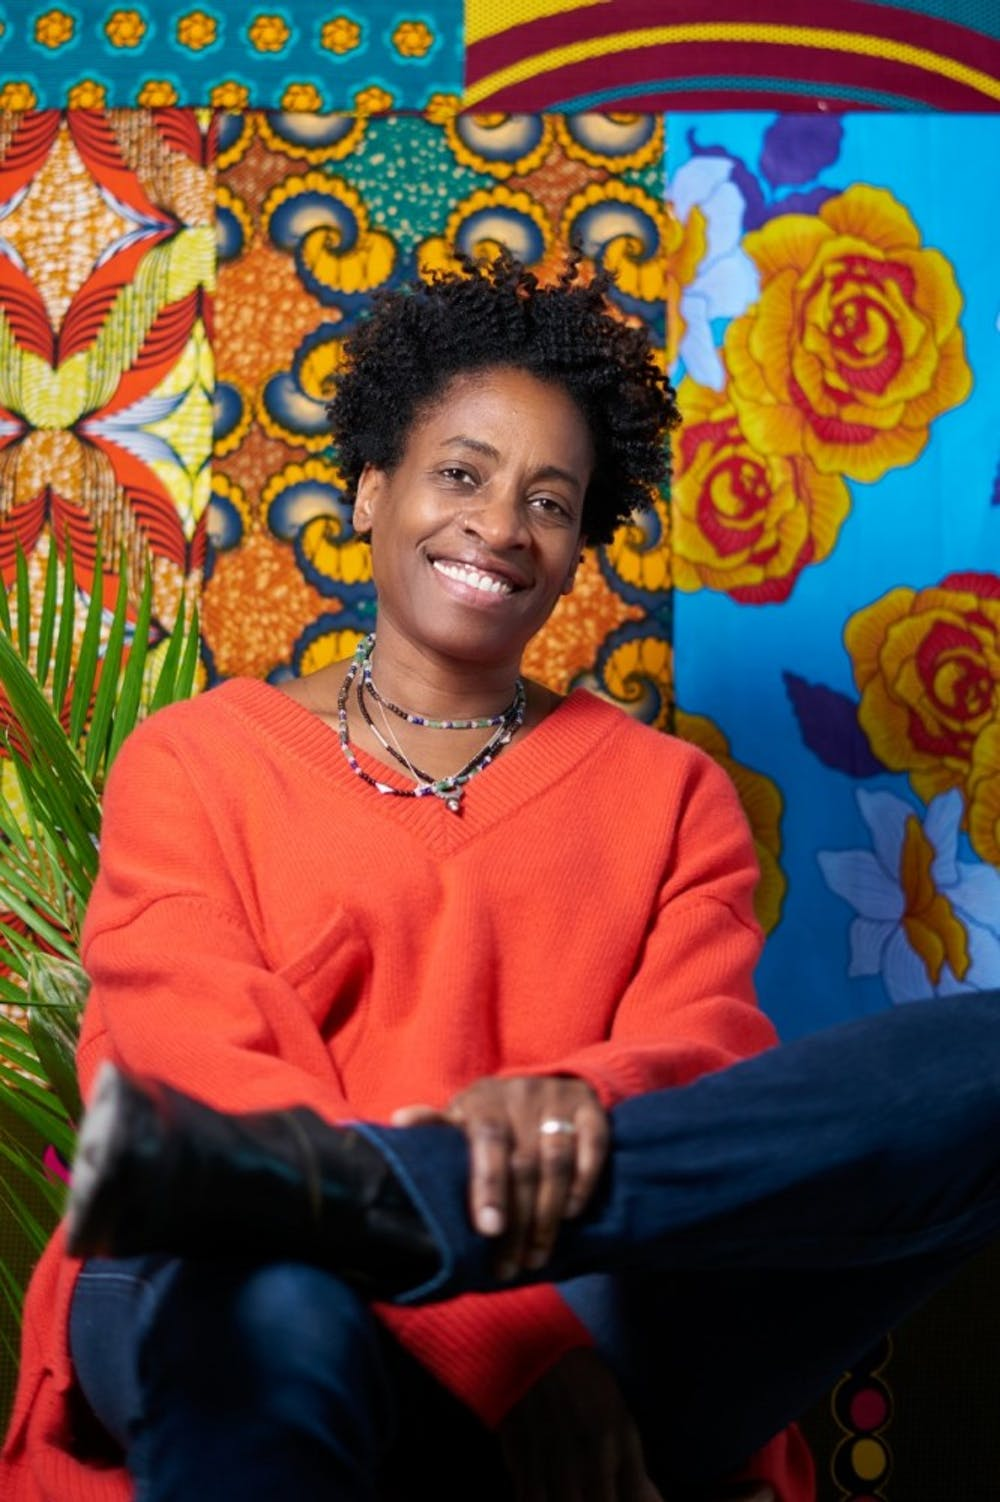 'We expect a packed house': Q&A with Flyleaf Books on author Jacqueline Woodson